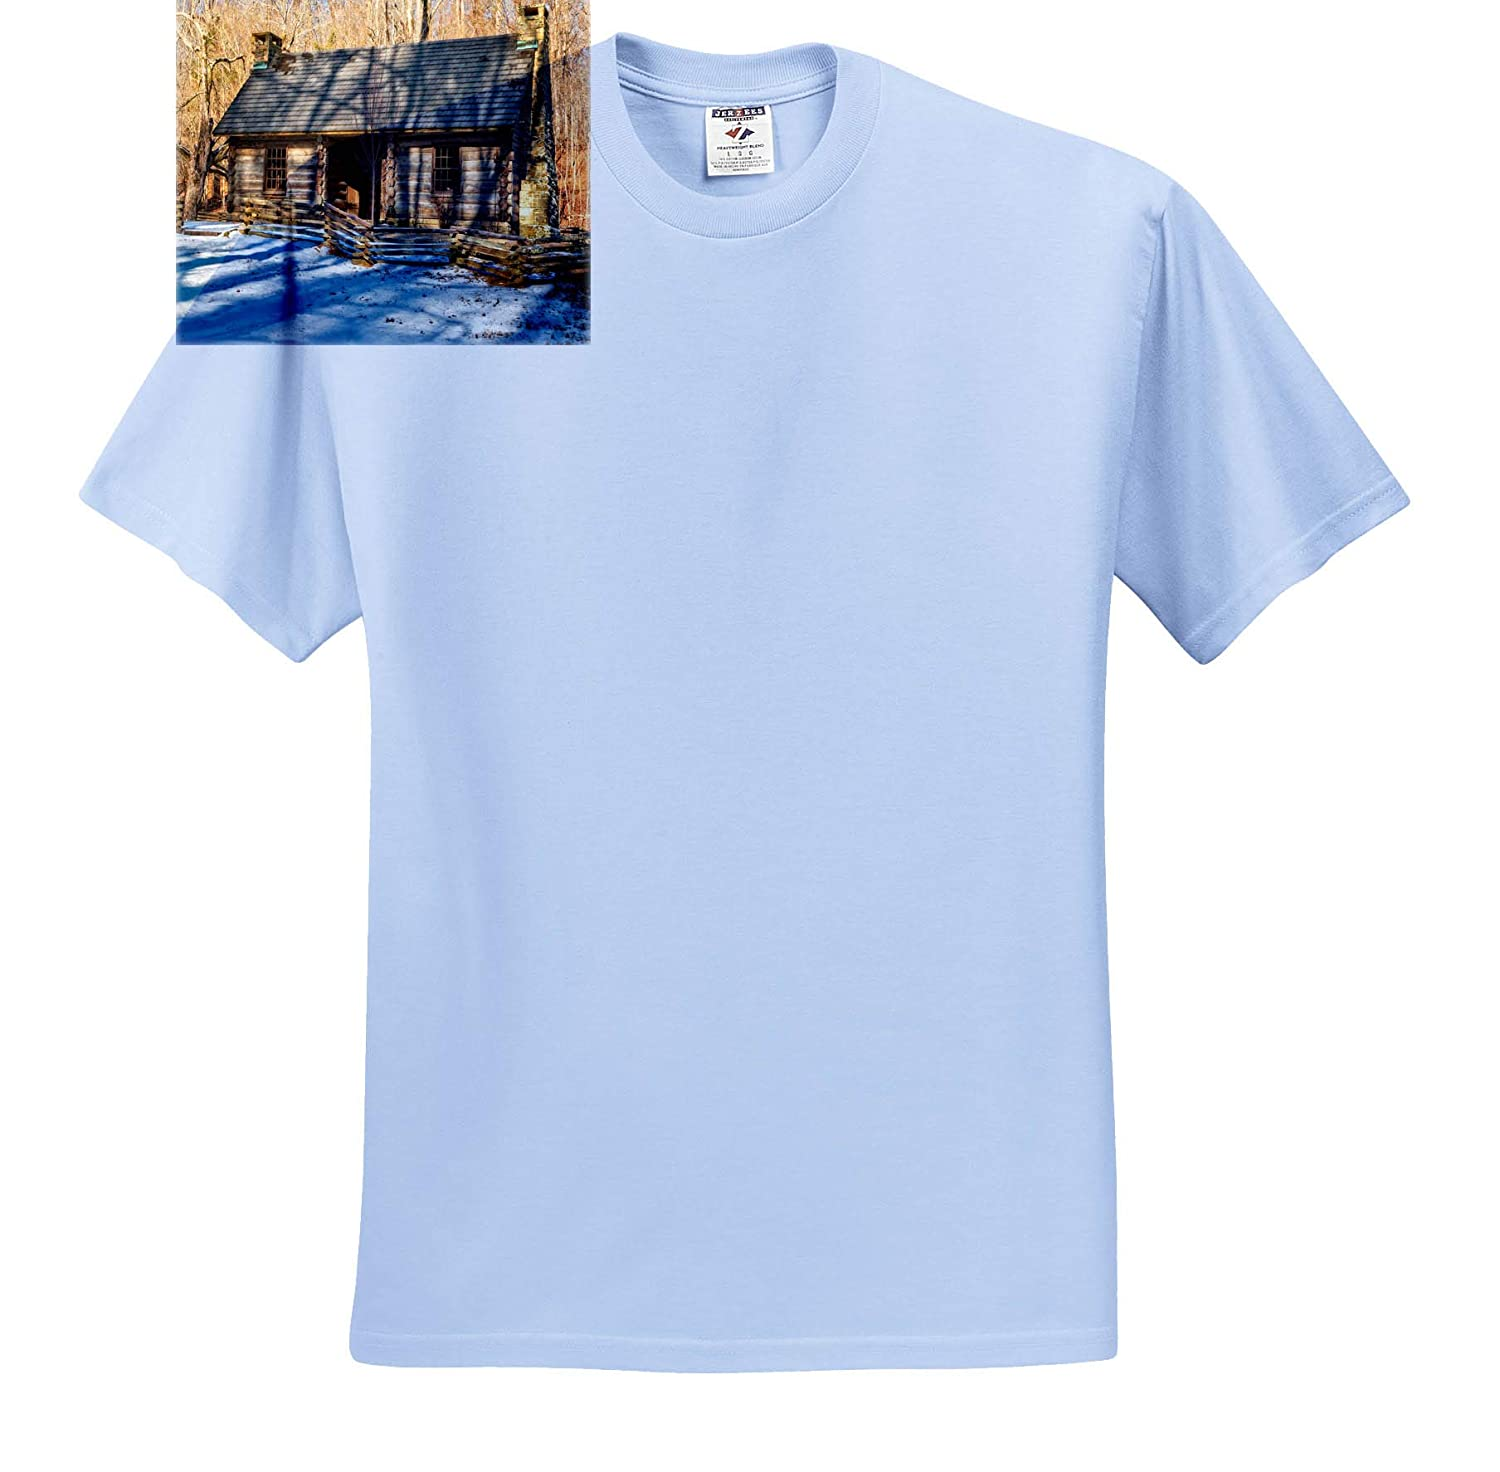 3dRose Mike Swindle Photography T-Shirts Landscape Cabin in Snow